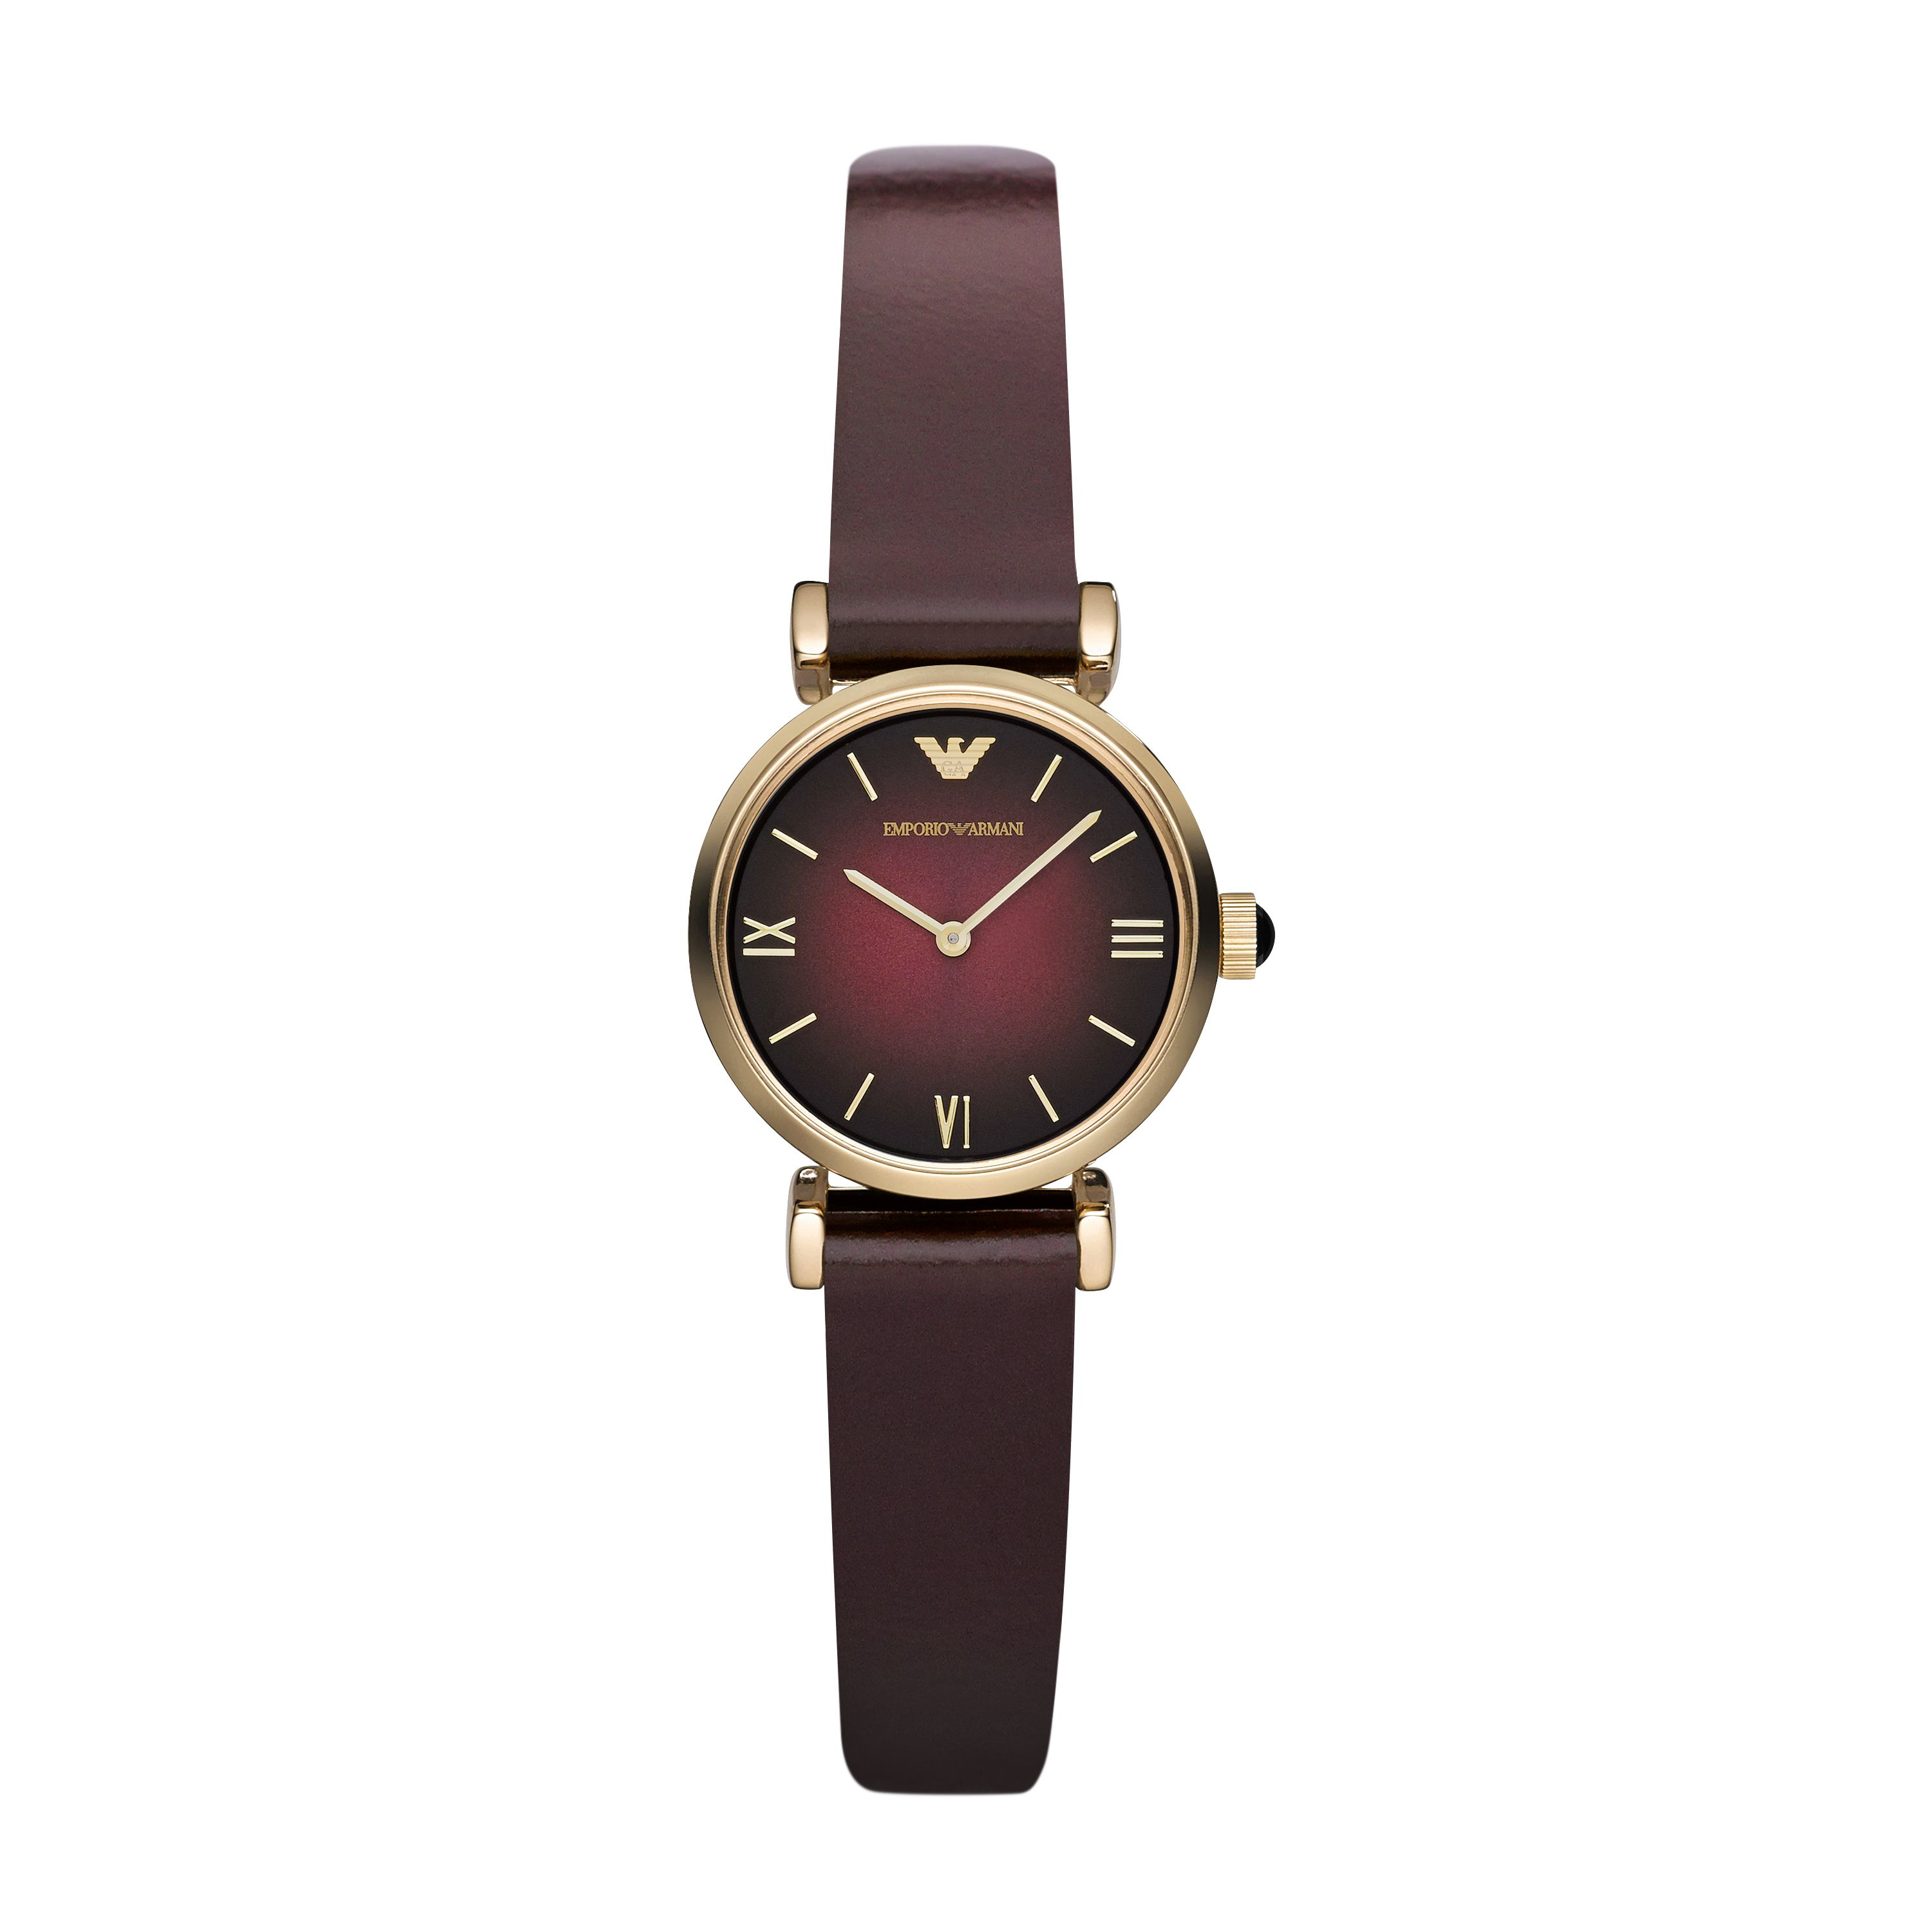 AR1758 RETRO bordeau leather ladies watch